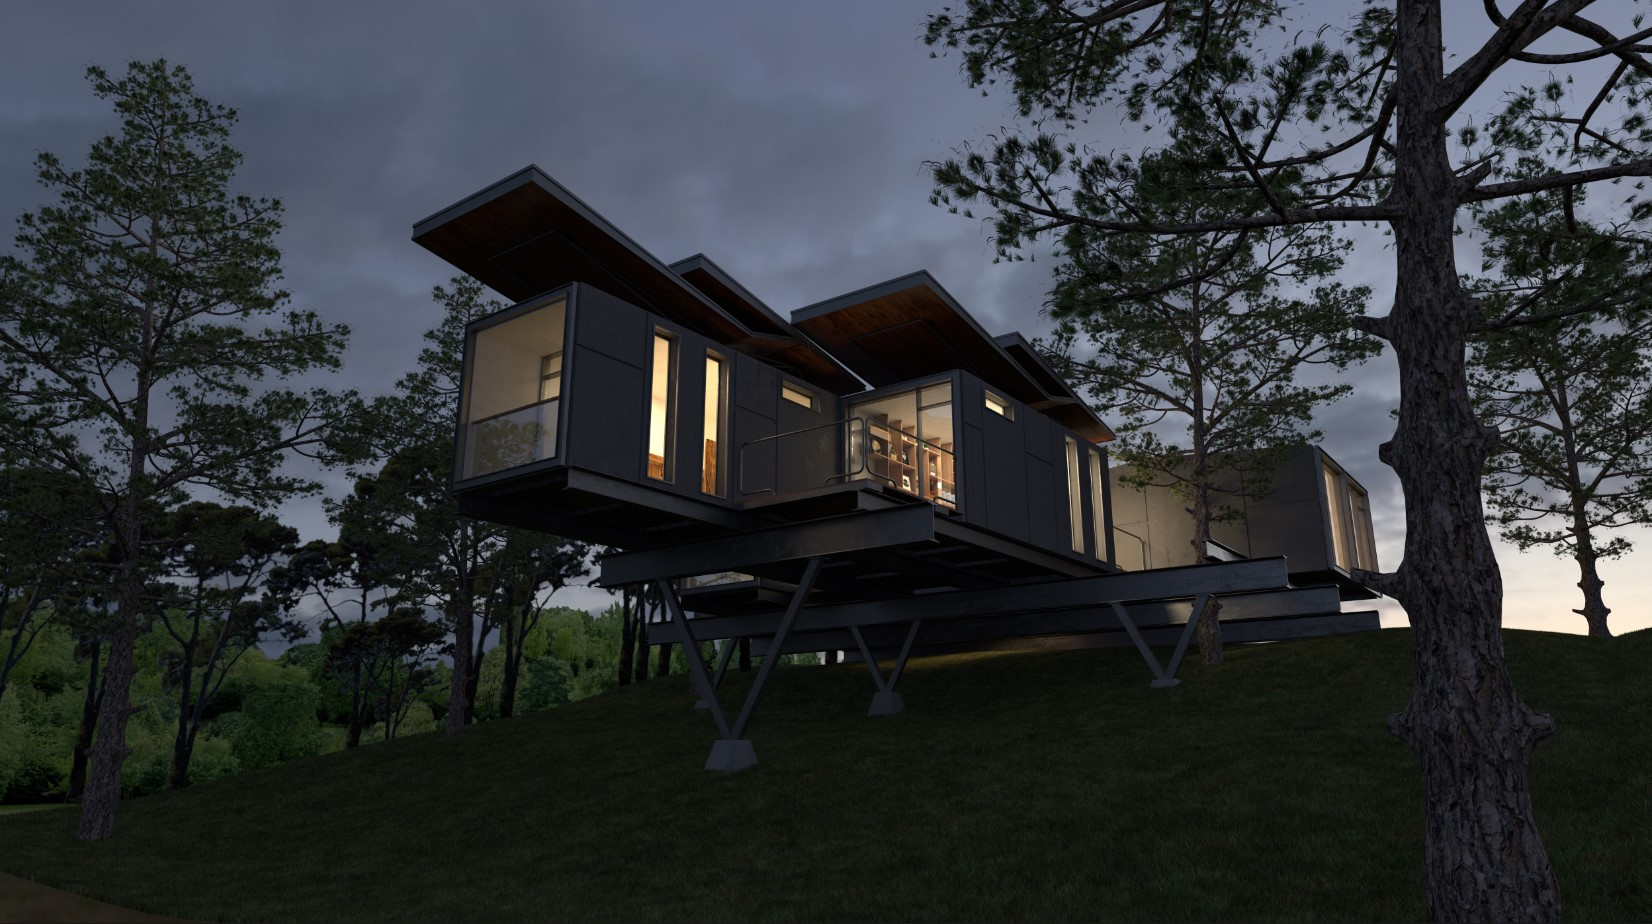 V-Ray For Sketchup To Make A Work Container Cabin 12